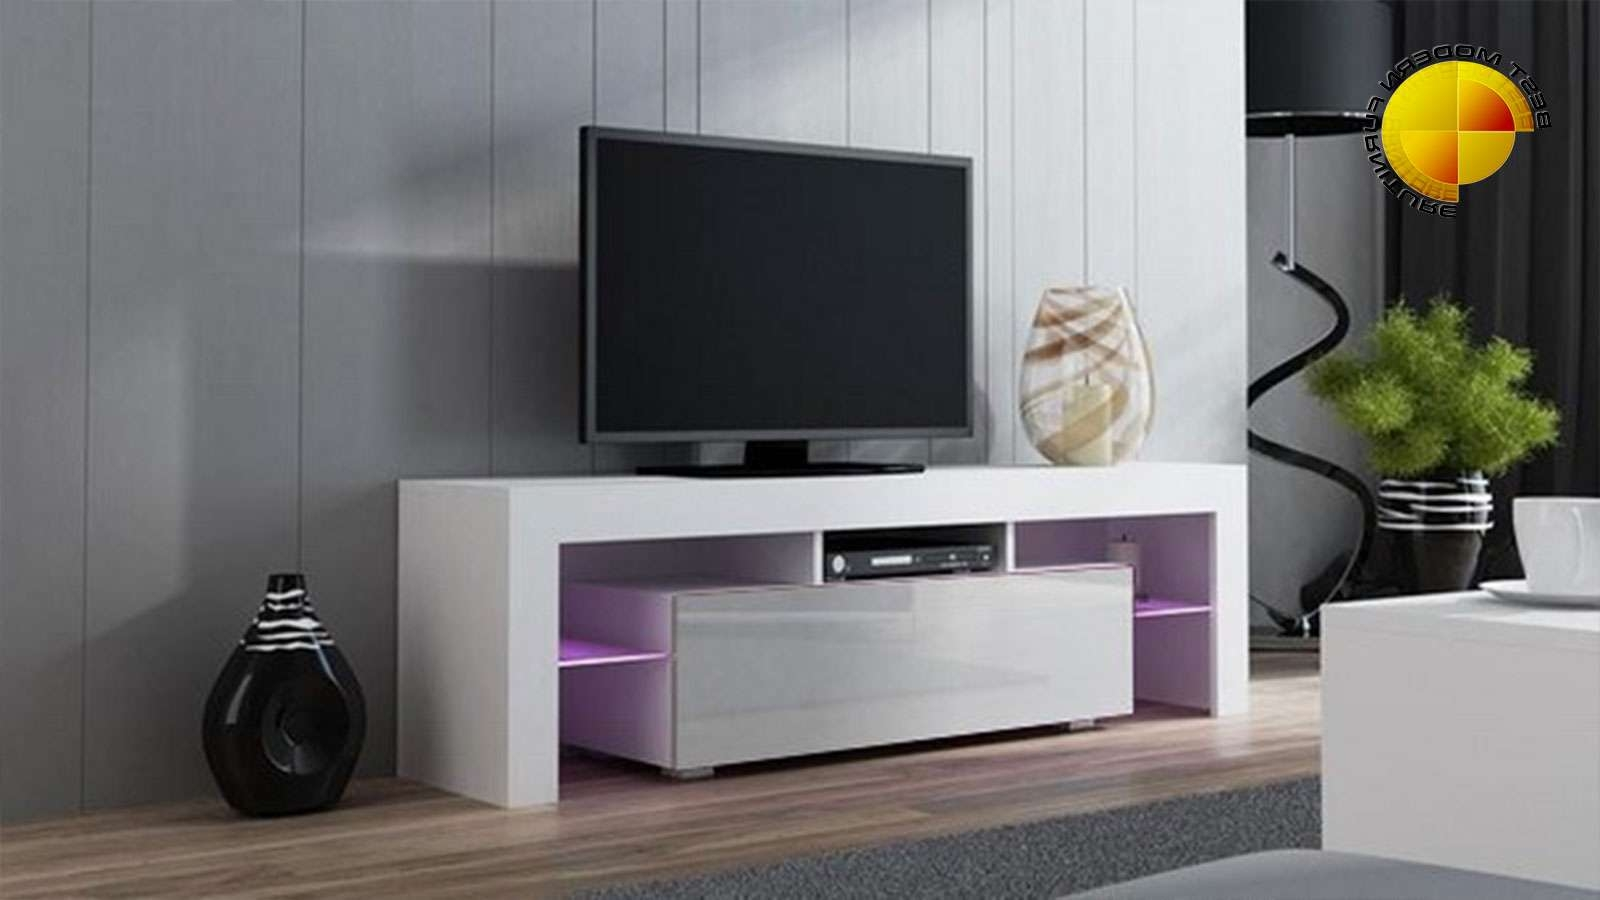 Modern Tv Stand 160cm High Gloss Cabinet Rgb Led Lights White Unit With Regard To Tv Stands With Led Lights (View 9 of 15)